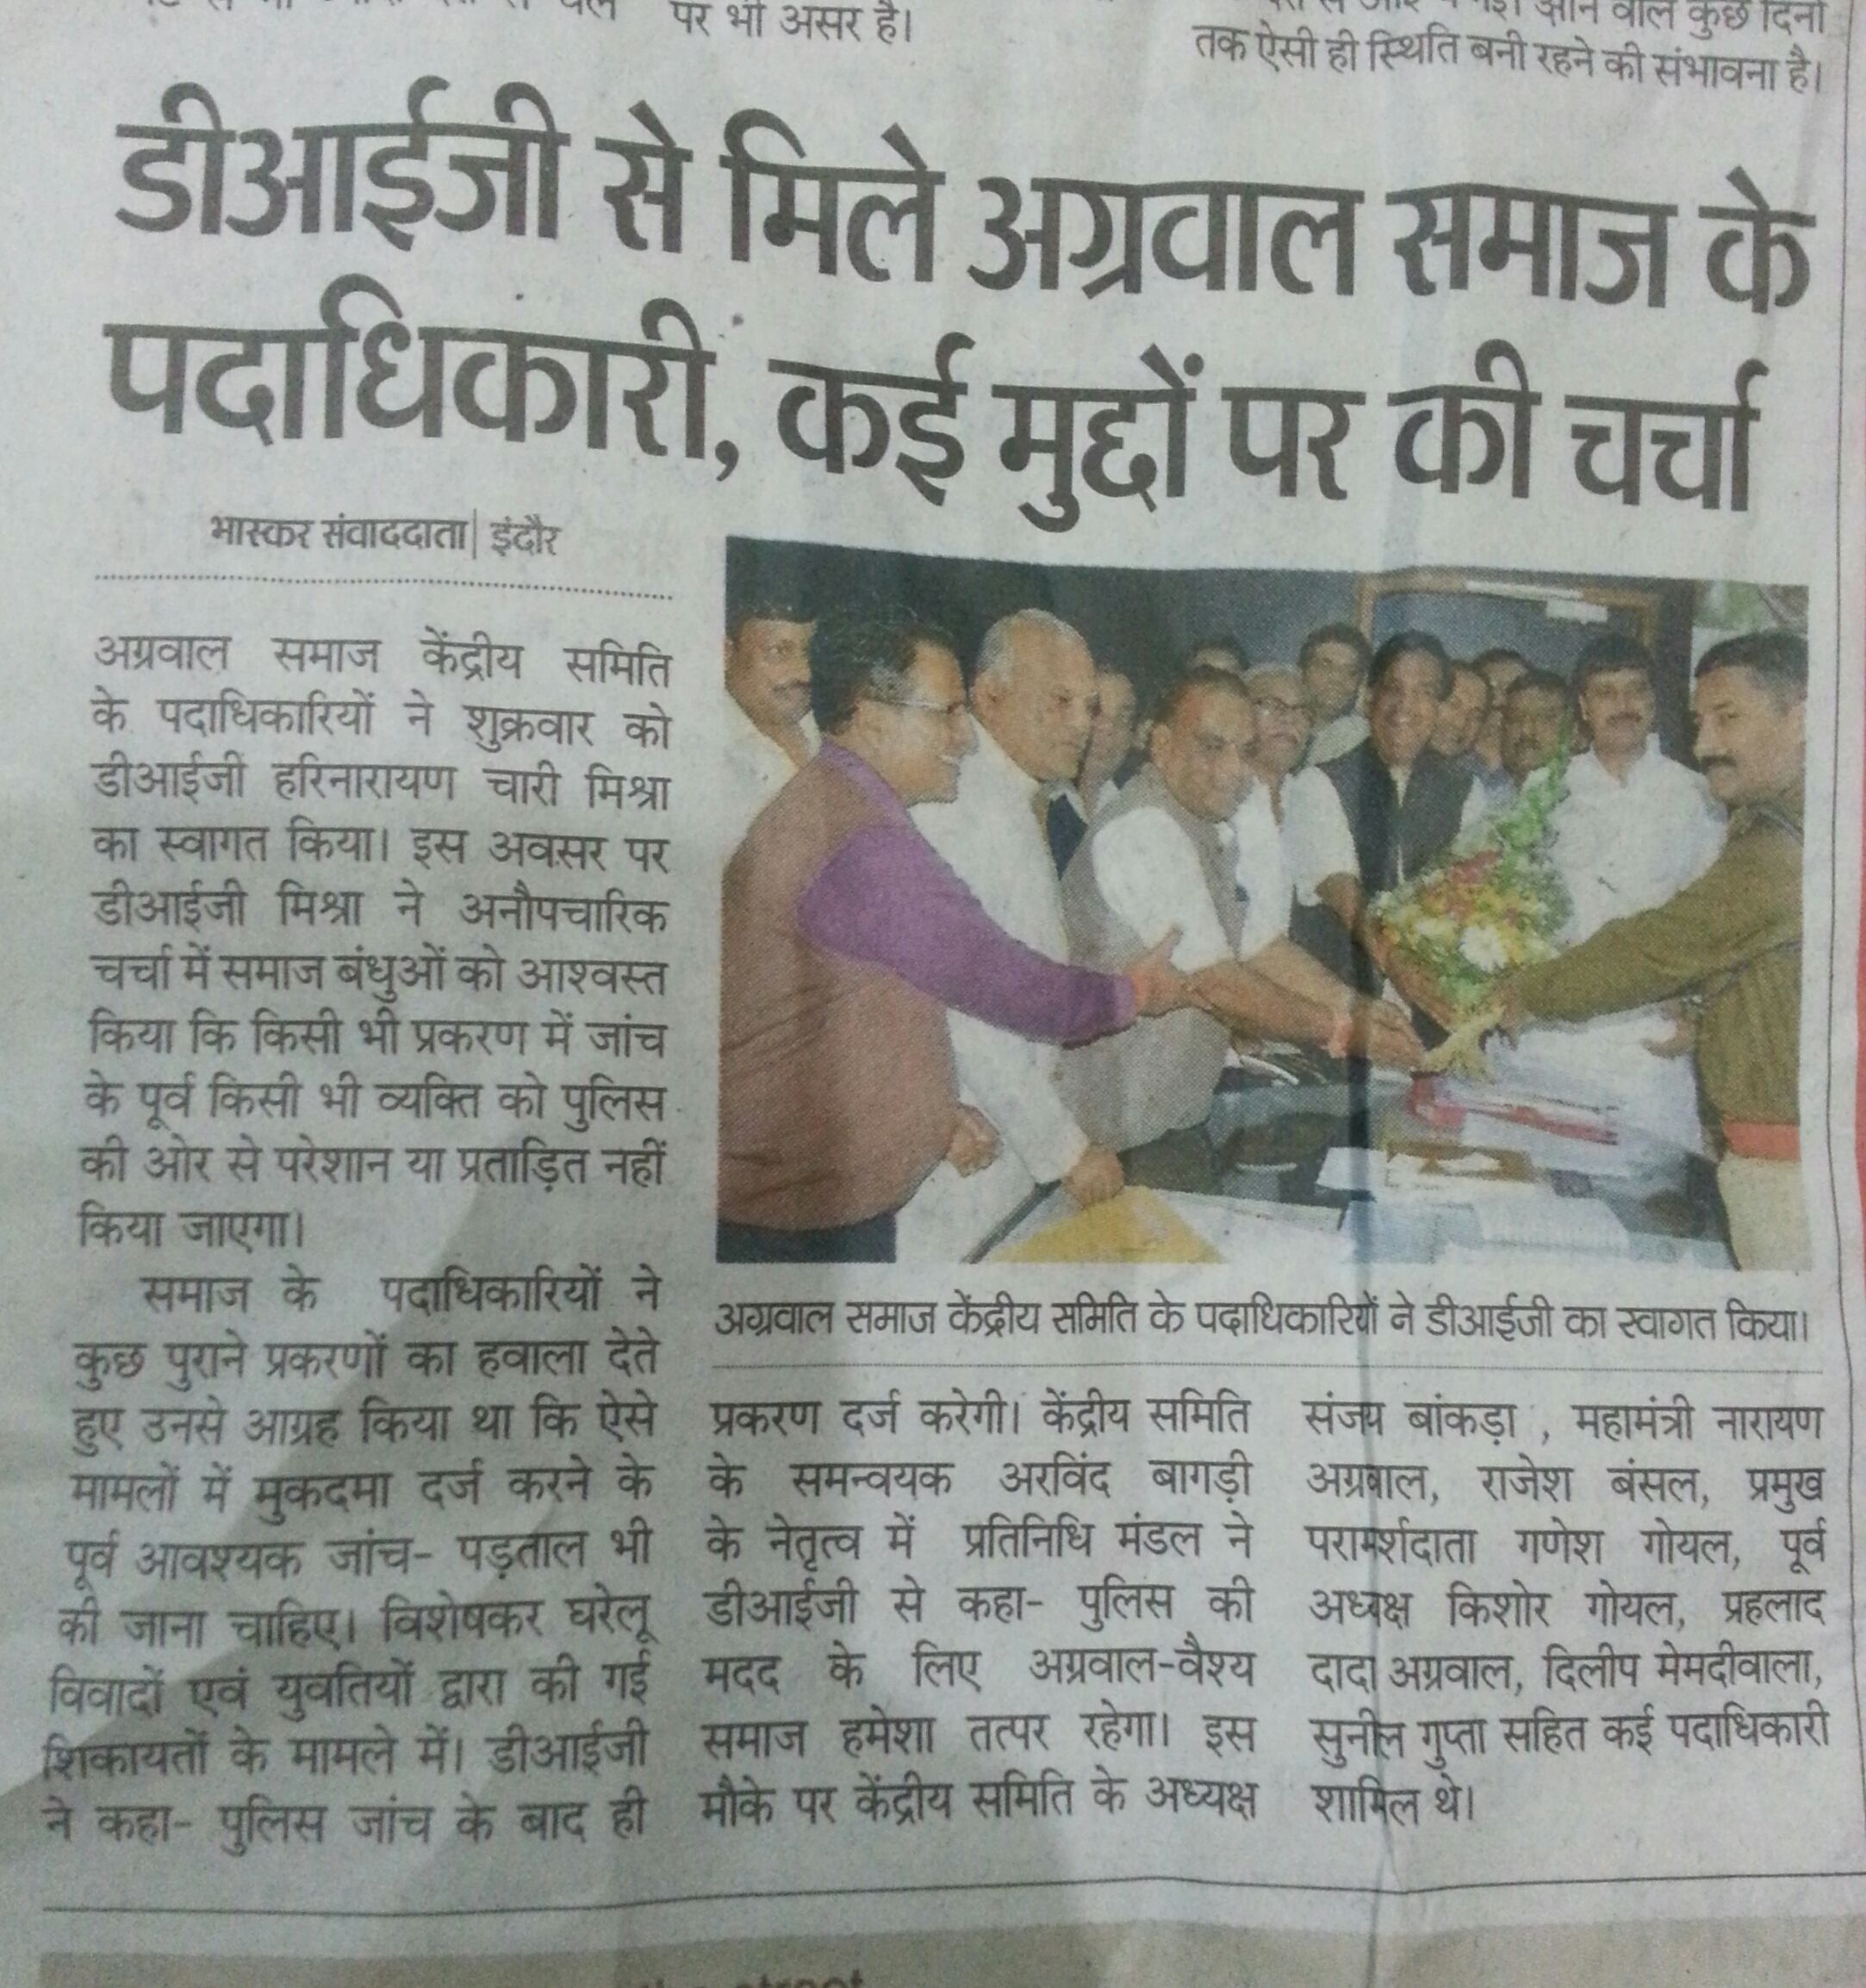 Pin by Agradunia on Agra dunia News, updates   Agra, Indore